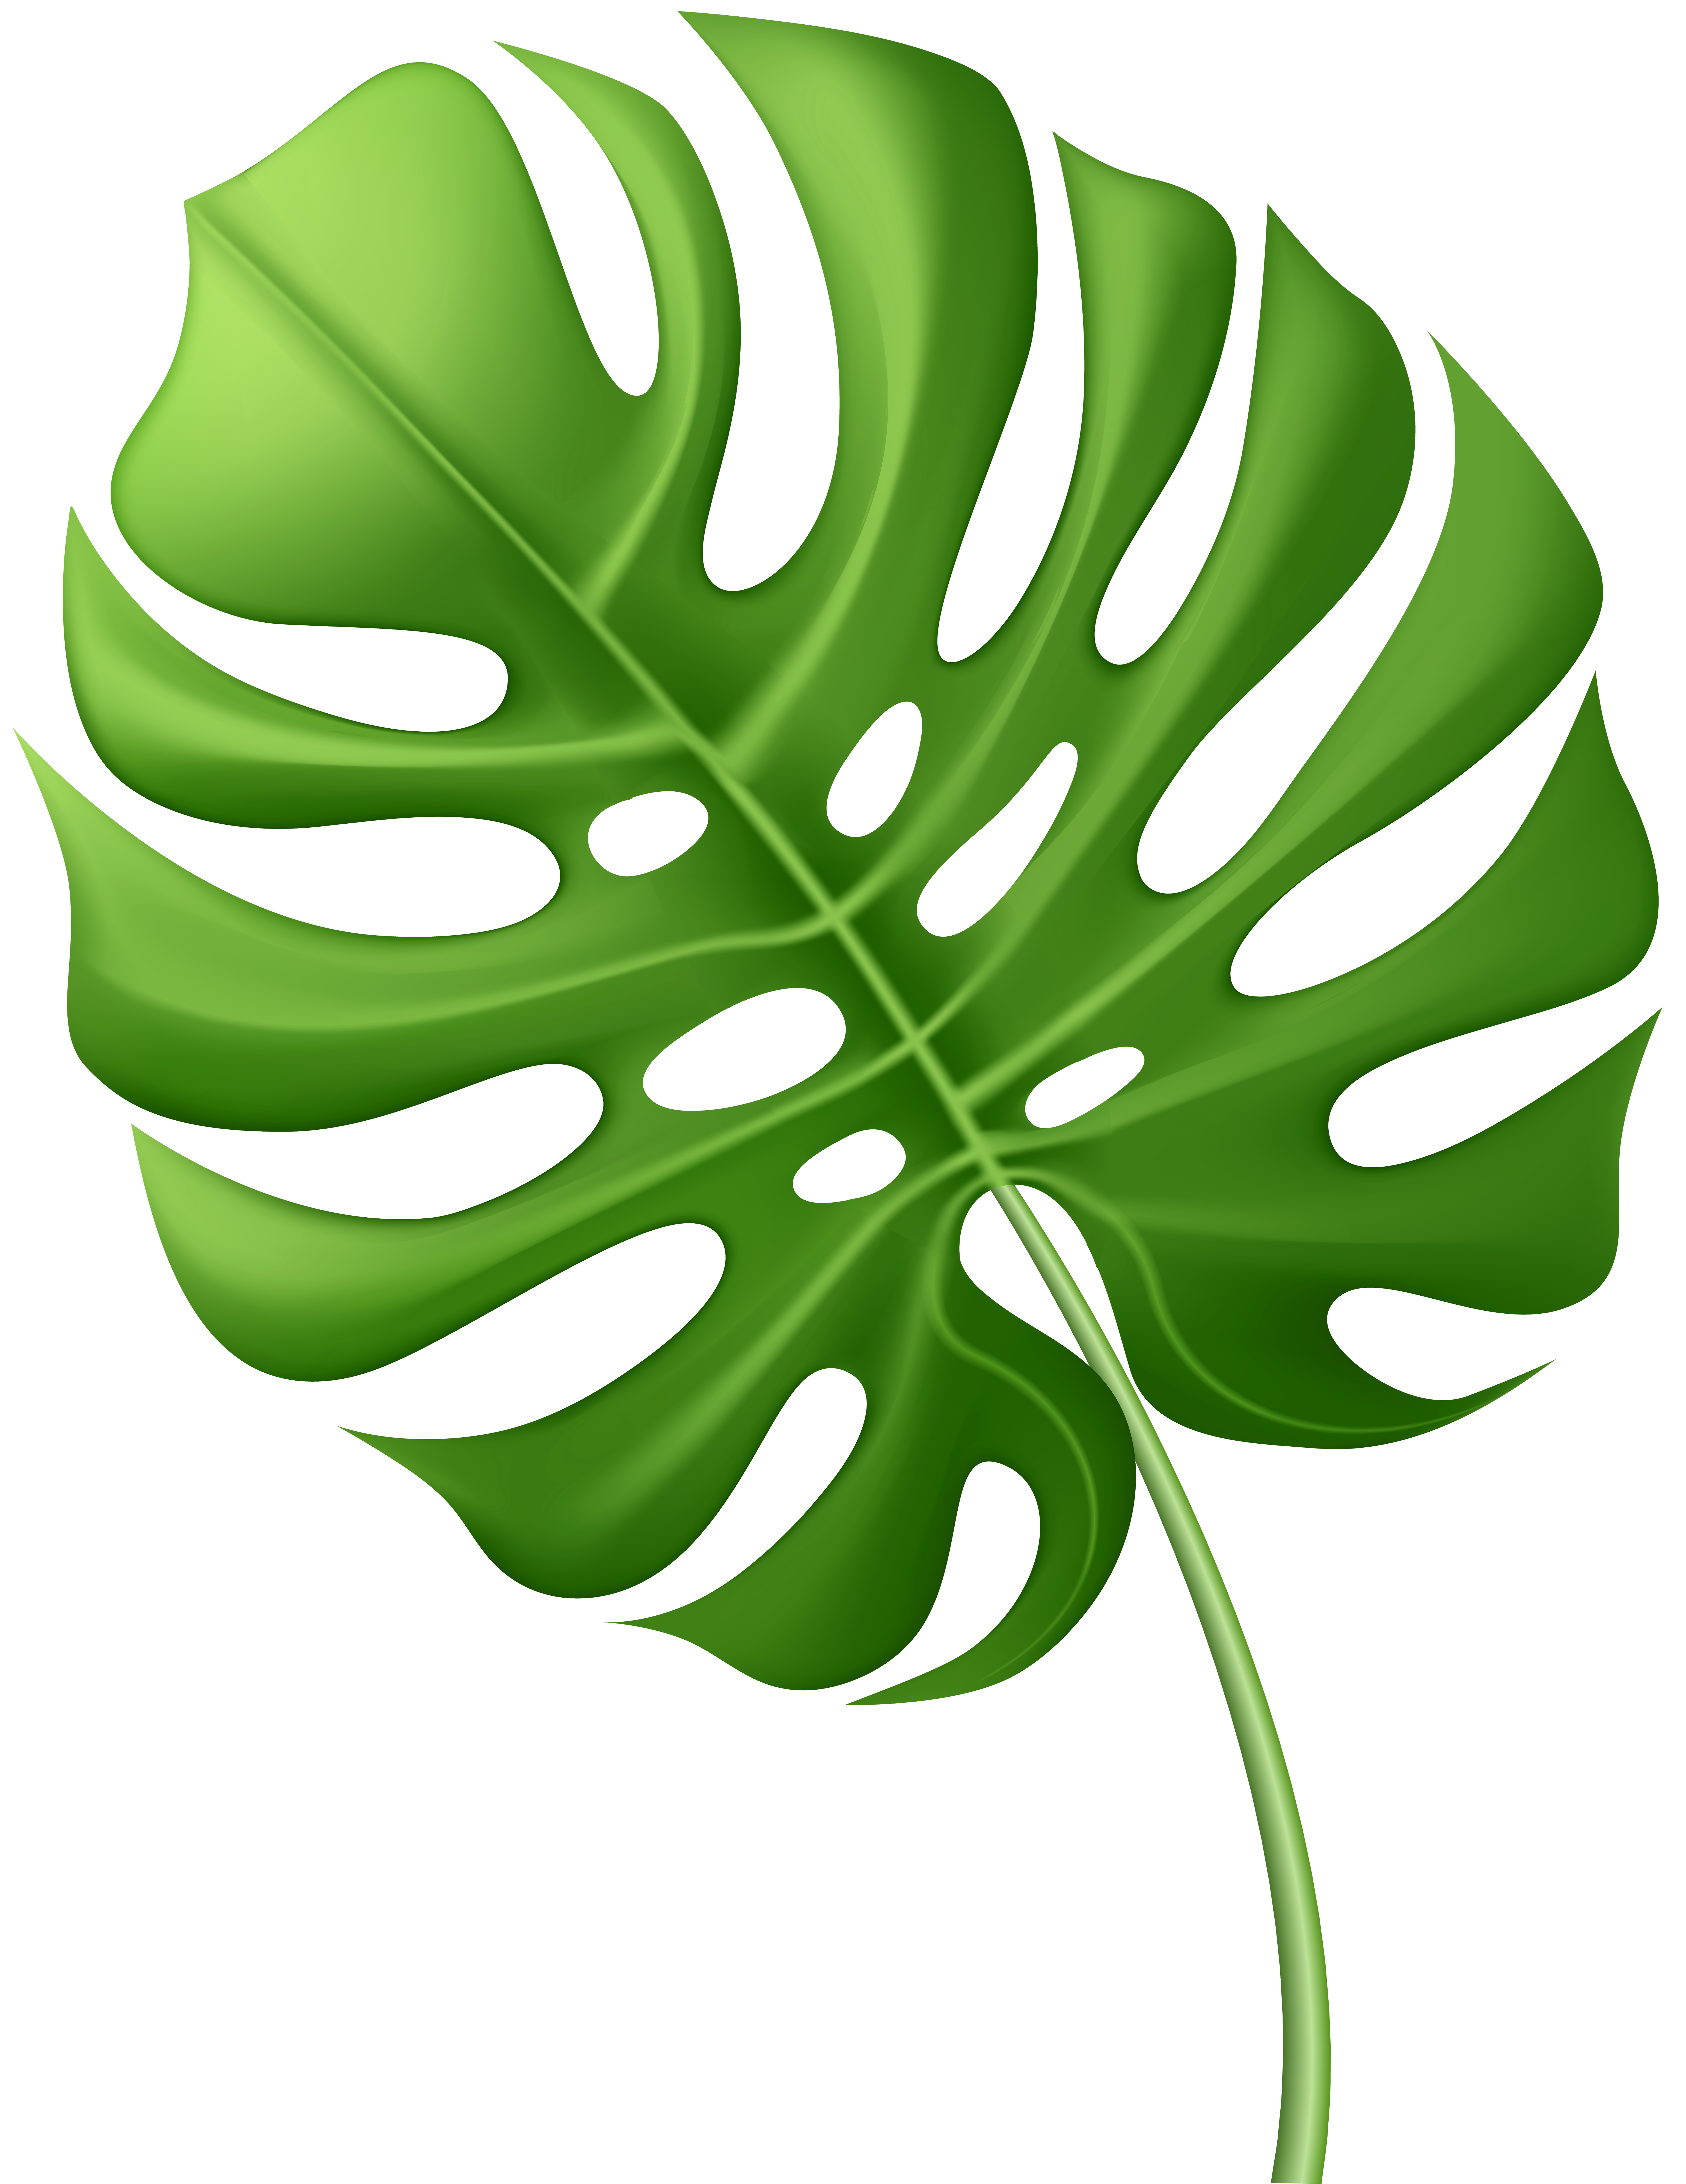 Clipart Leaves Tropical Clipart Leaves Tropical Transparent Free For Download On Webstockreview 2021 The best gifs are on giphy. webstockreview